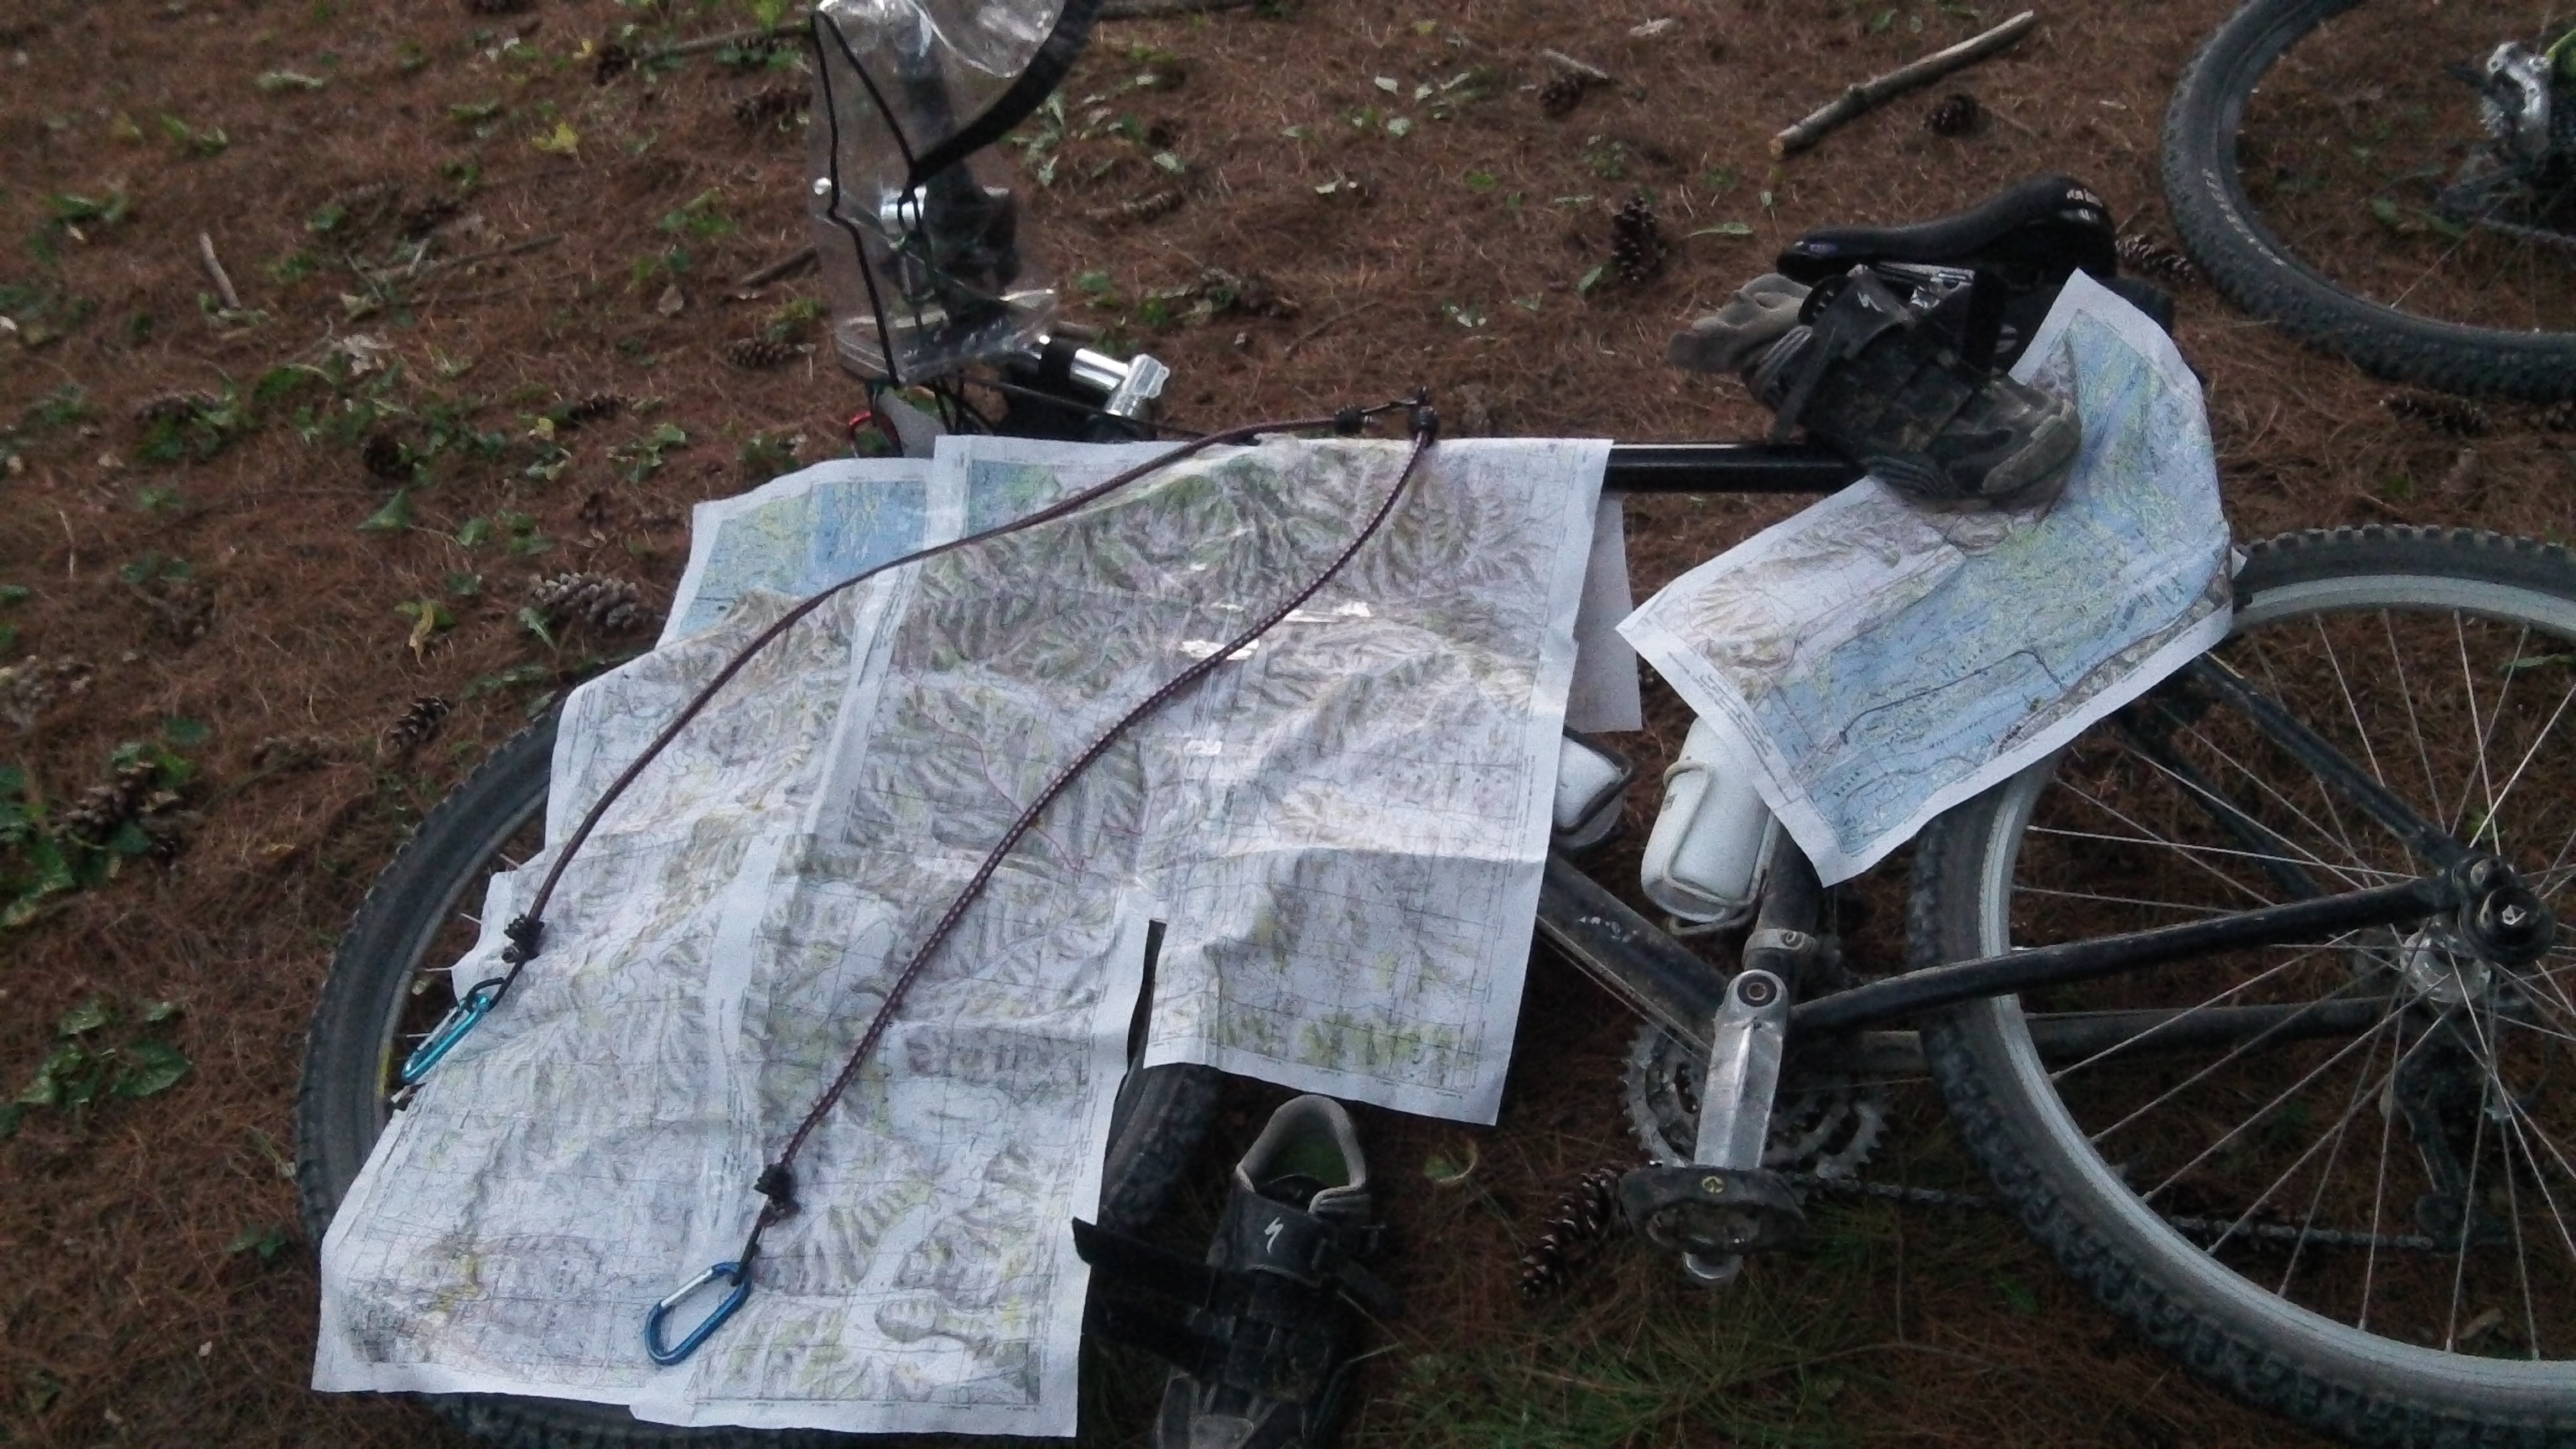 Wet maps at an adventure race